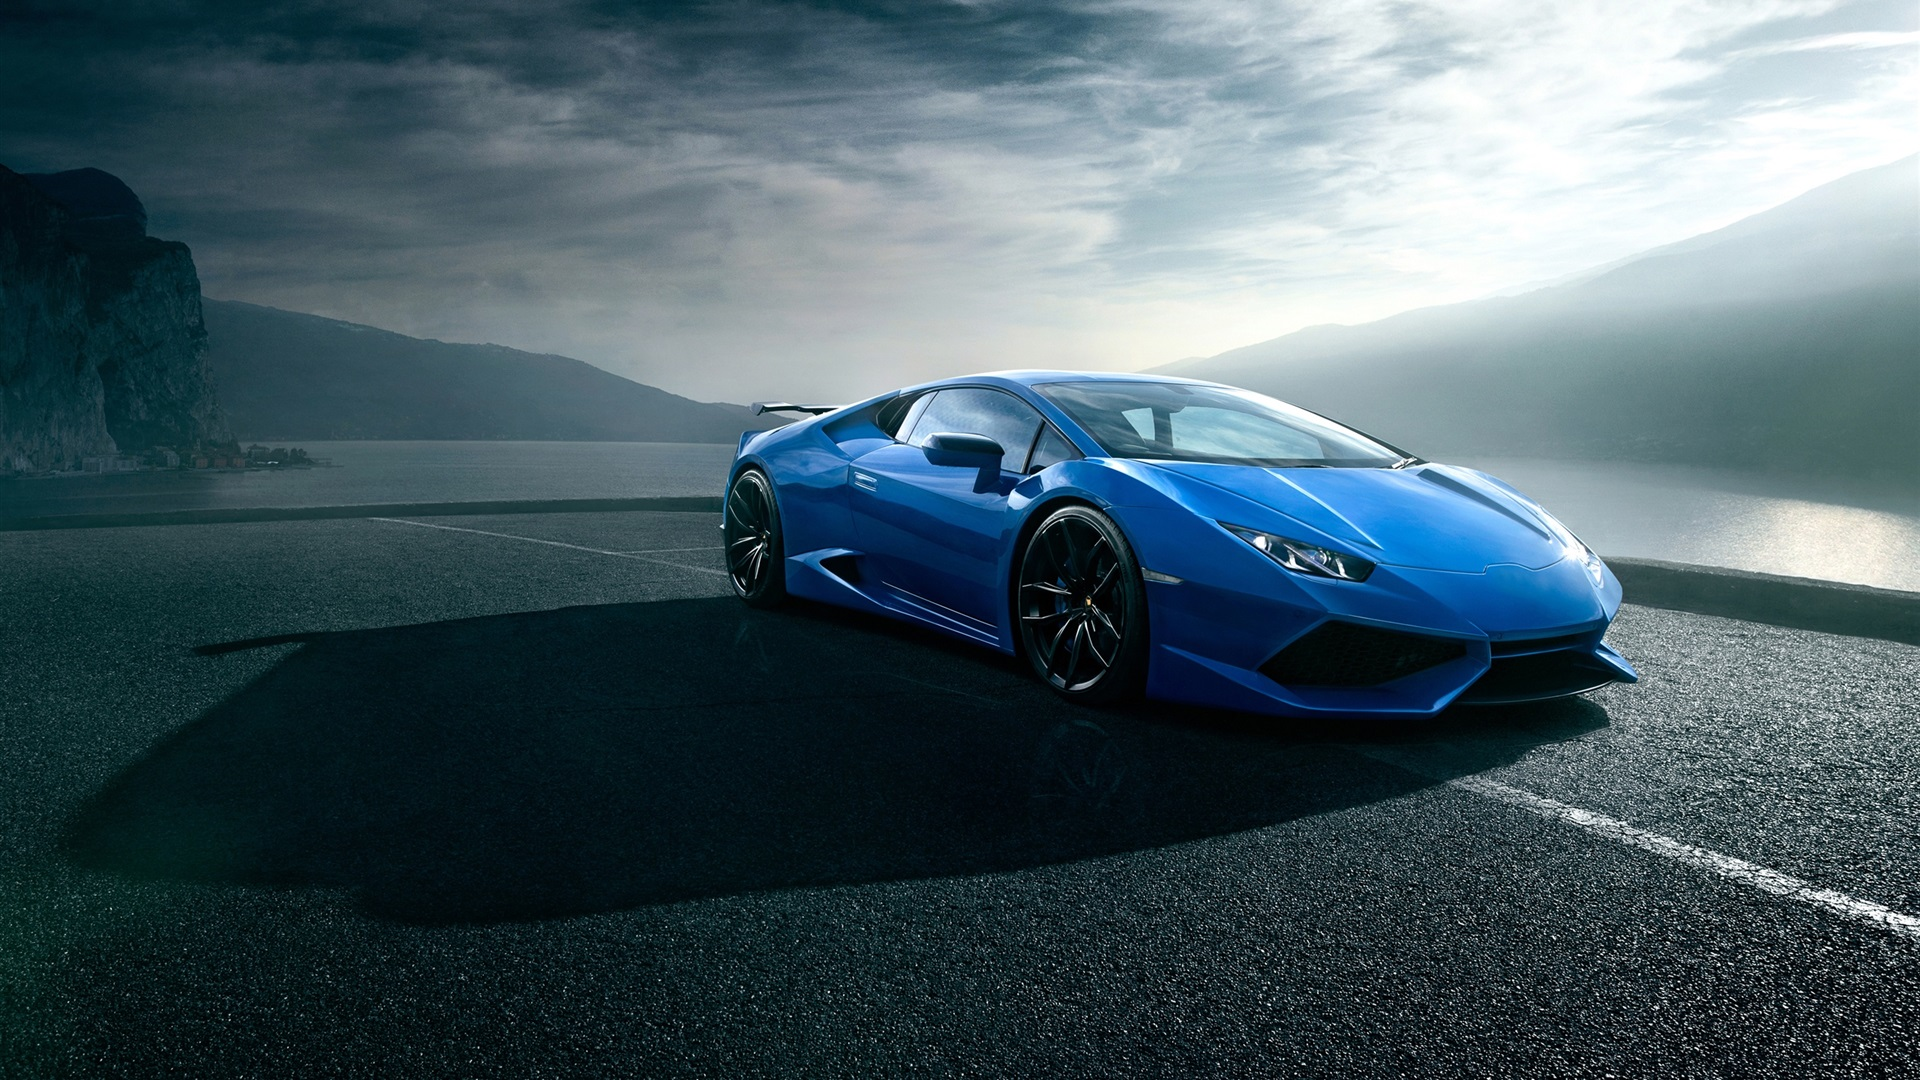 320x480 Car Wallpapers Wallpaper Lamborghini Huracan Blue Luxury Supercar Road